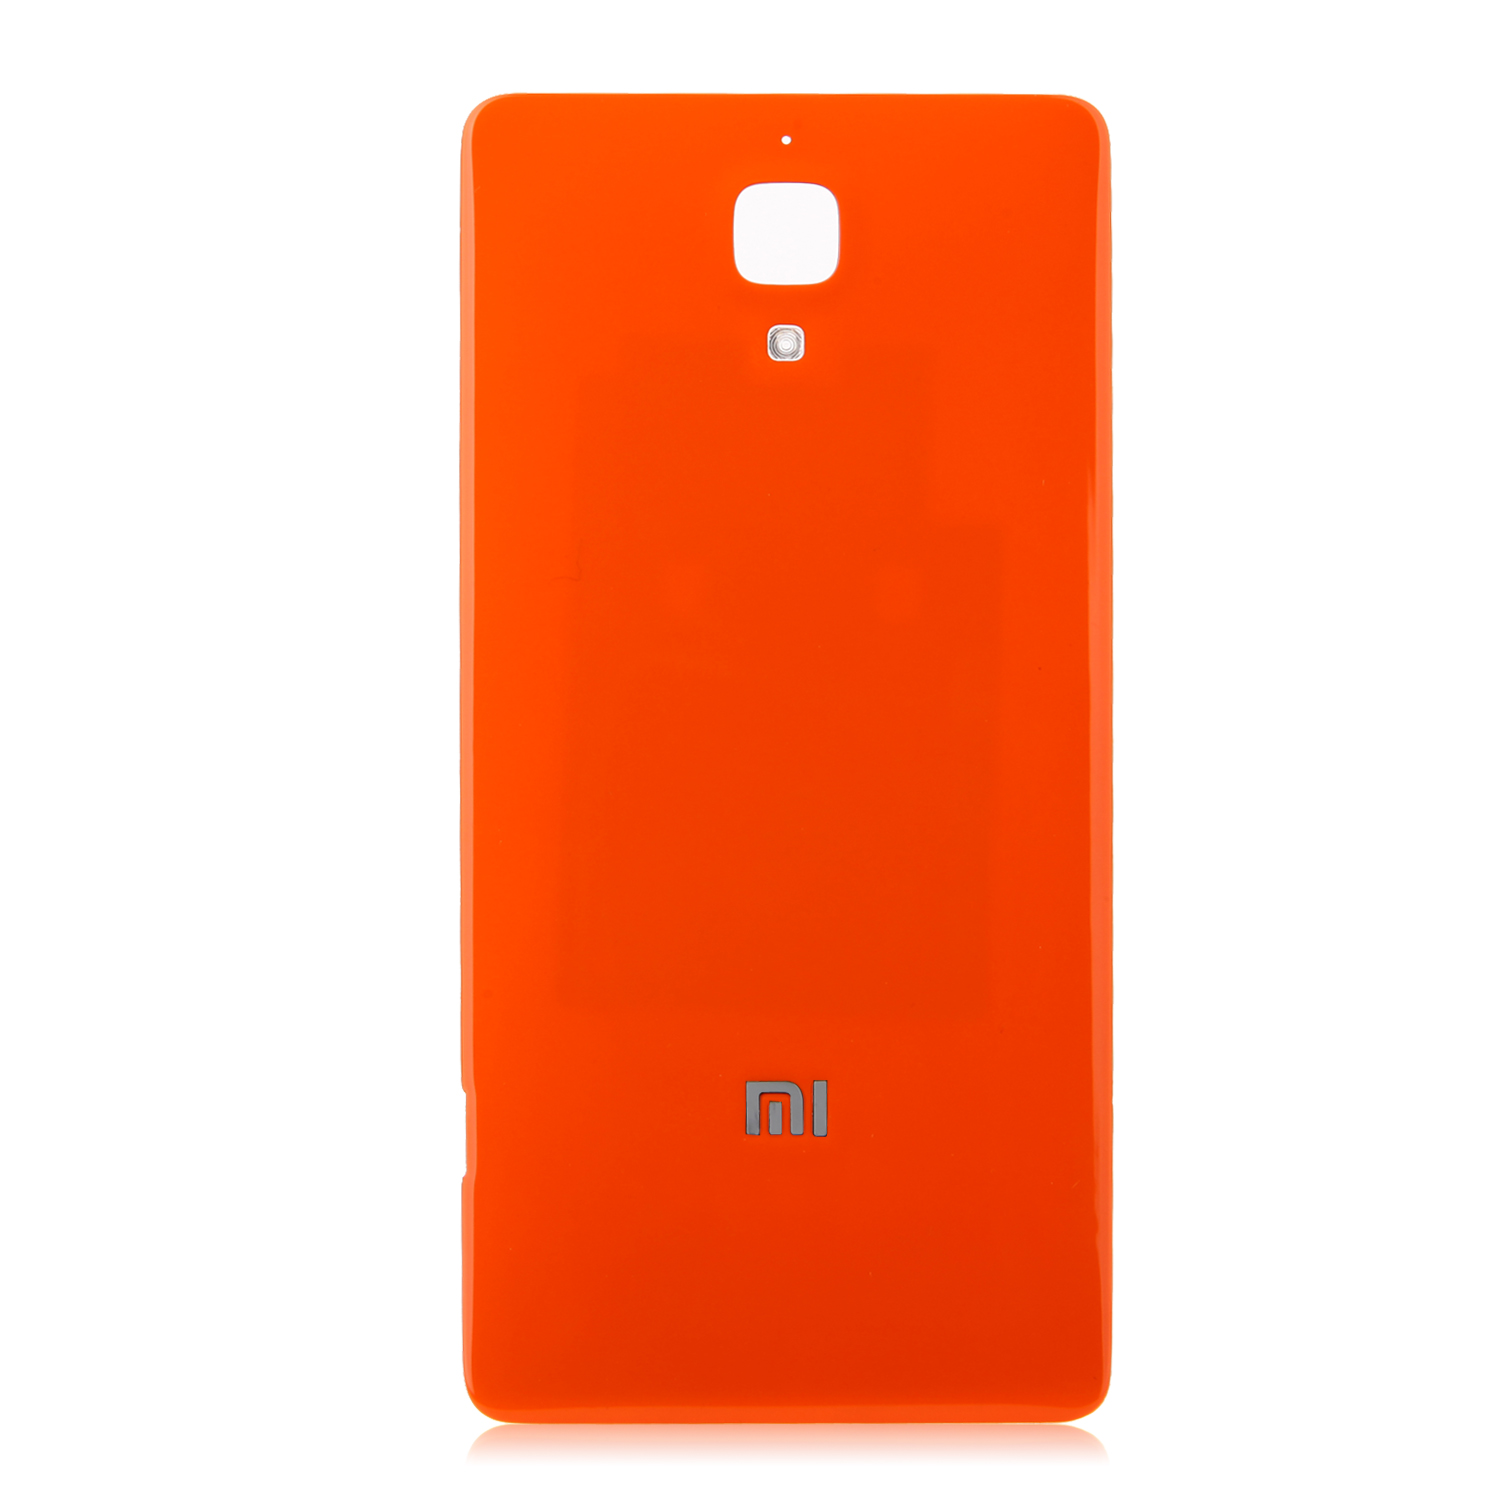 Replacement Battery Cover Back Case for XIAOMI MI4 Smartphone Orange